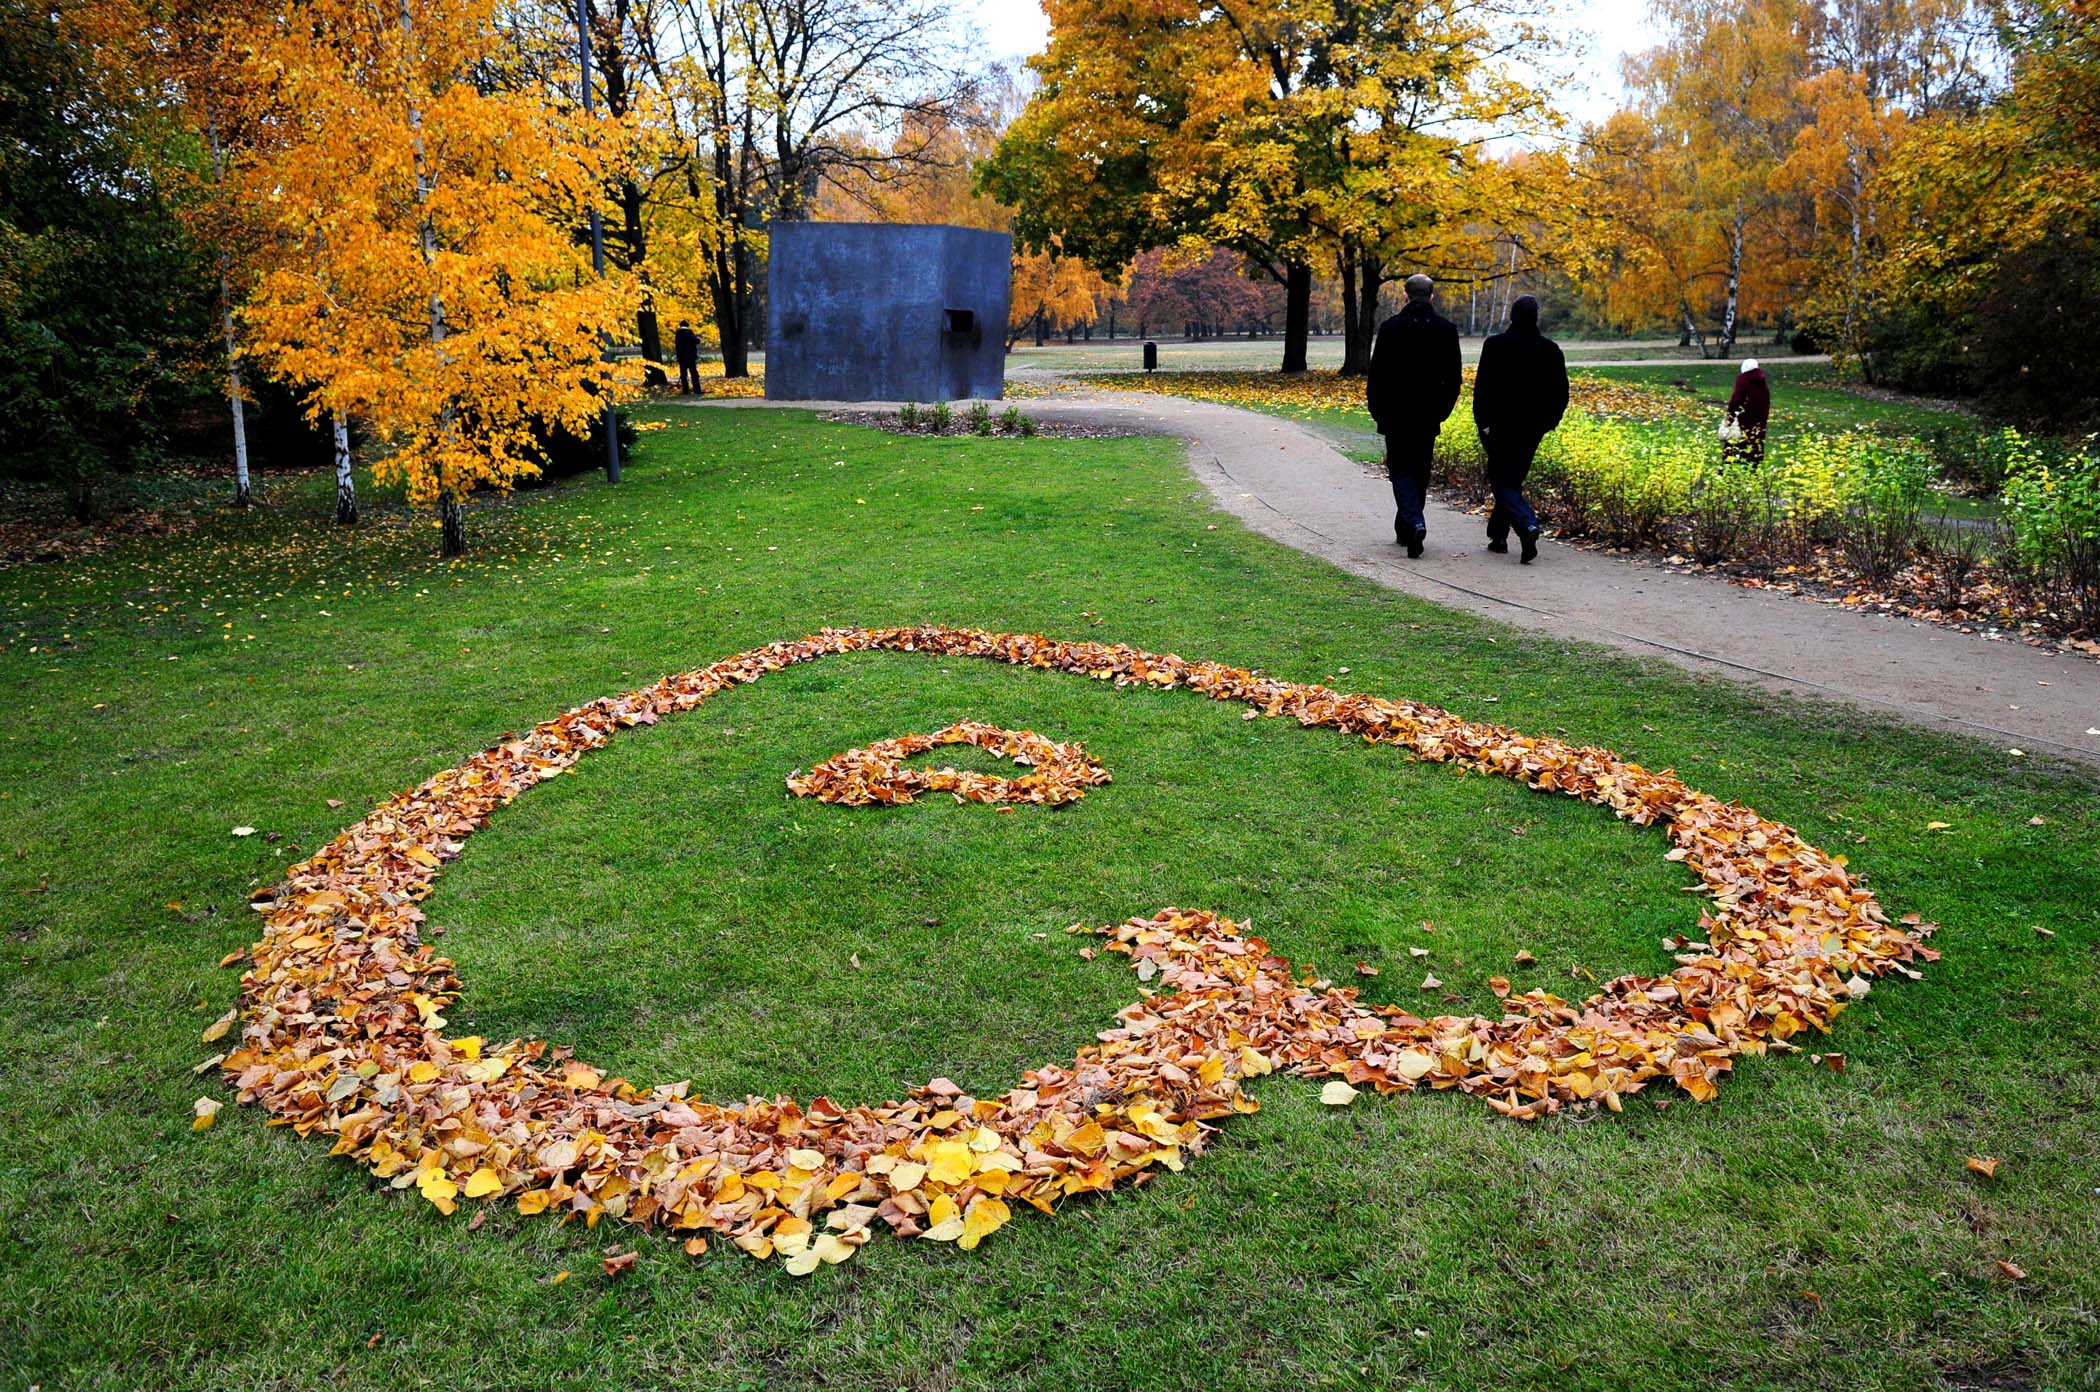 NOVEMBER 2: People walk past a heart made of autumnally colored leaves in Berlin's Tiergarten park. (Johannes Eisele/AFP/Getty Images)